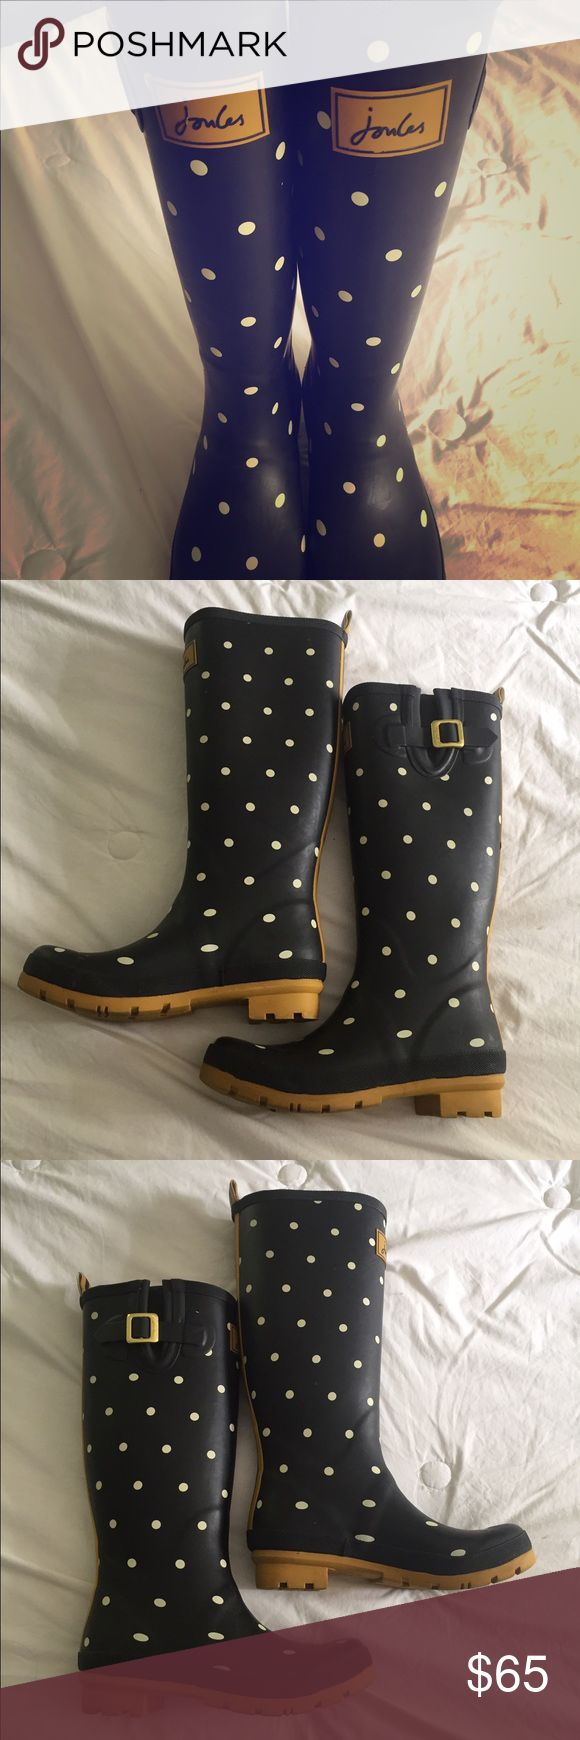 🍉SALE🍉 Joules Polka Dot Wellies Rainboots Joules Wellies! These black rainboots have white polka dots, yellow striped back, and yellow on sole. They are a size EU 38, US 7, and have been worn less than 5 times. These are my favorite brand for comfortable rain boots! Joules Shoes Winter & Rain Boots